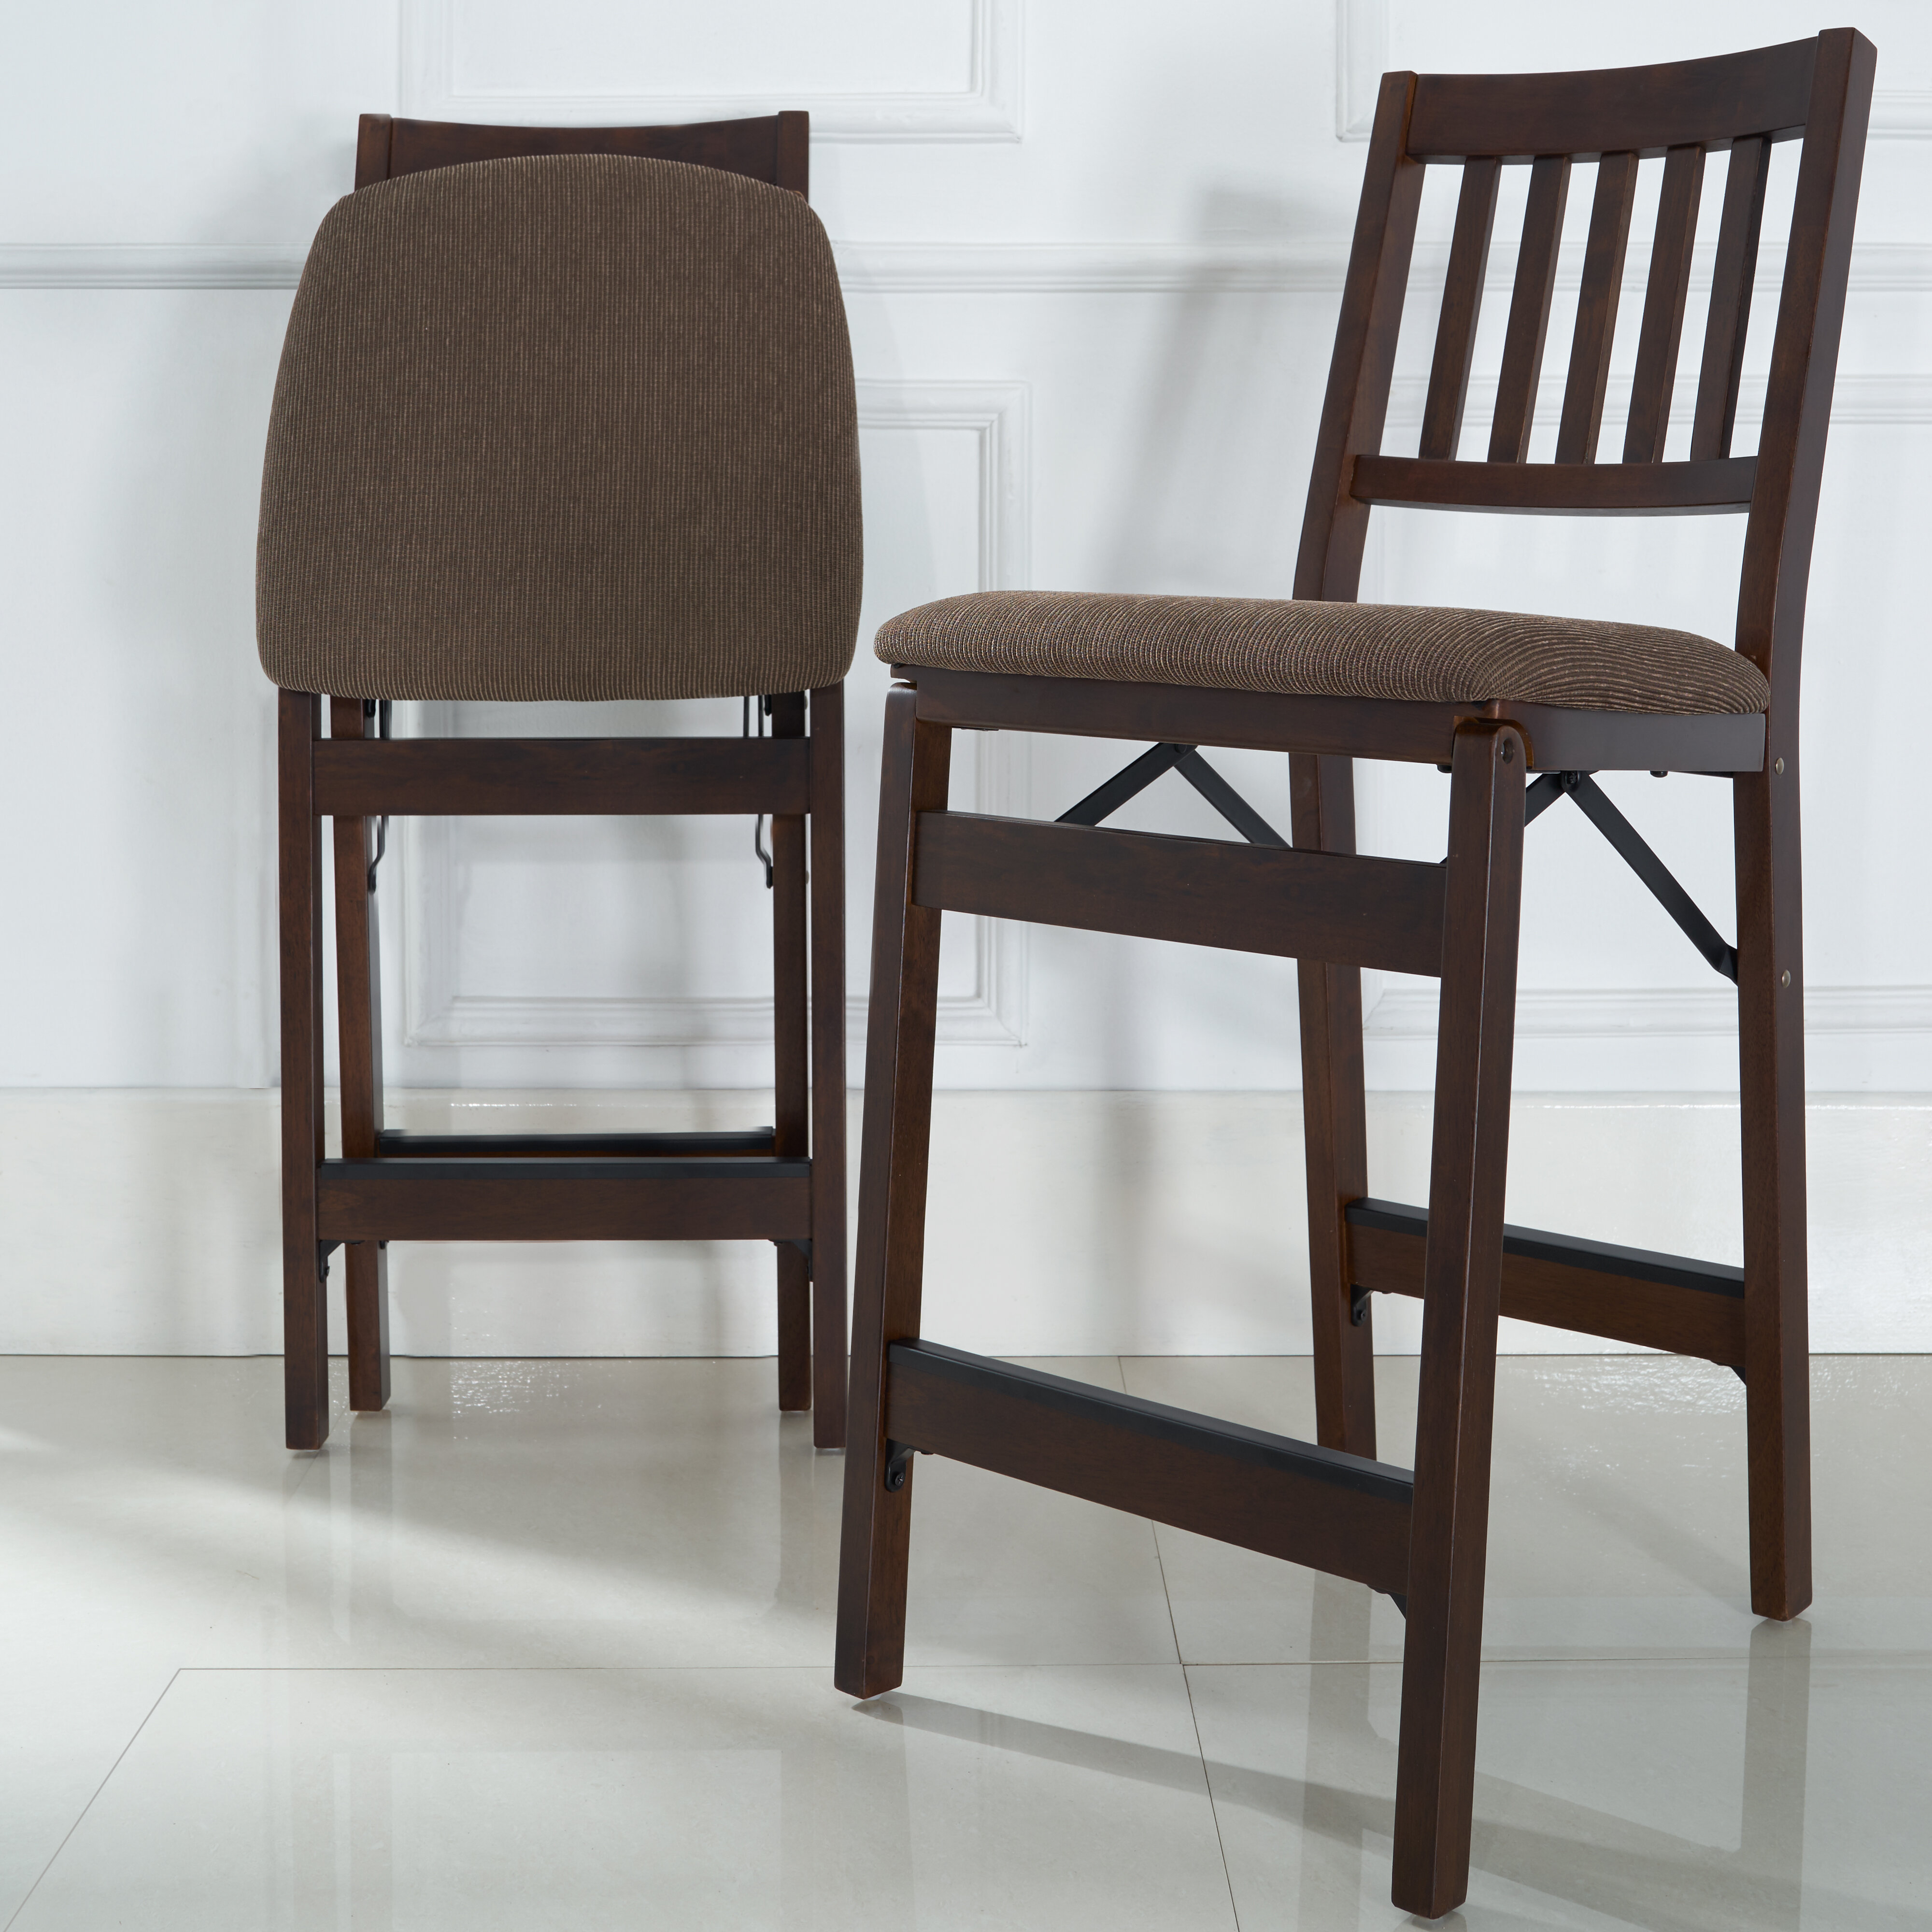 Awesome Emington Folding Barstools Gmtry Best Dining Table And Chair Ideas Images Gmtryco